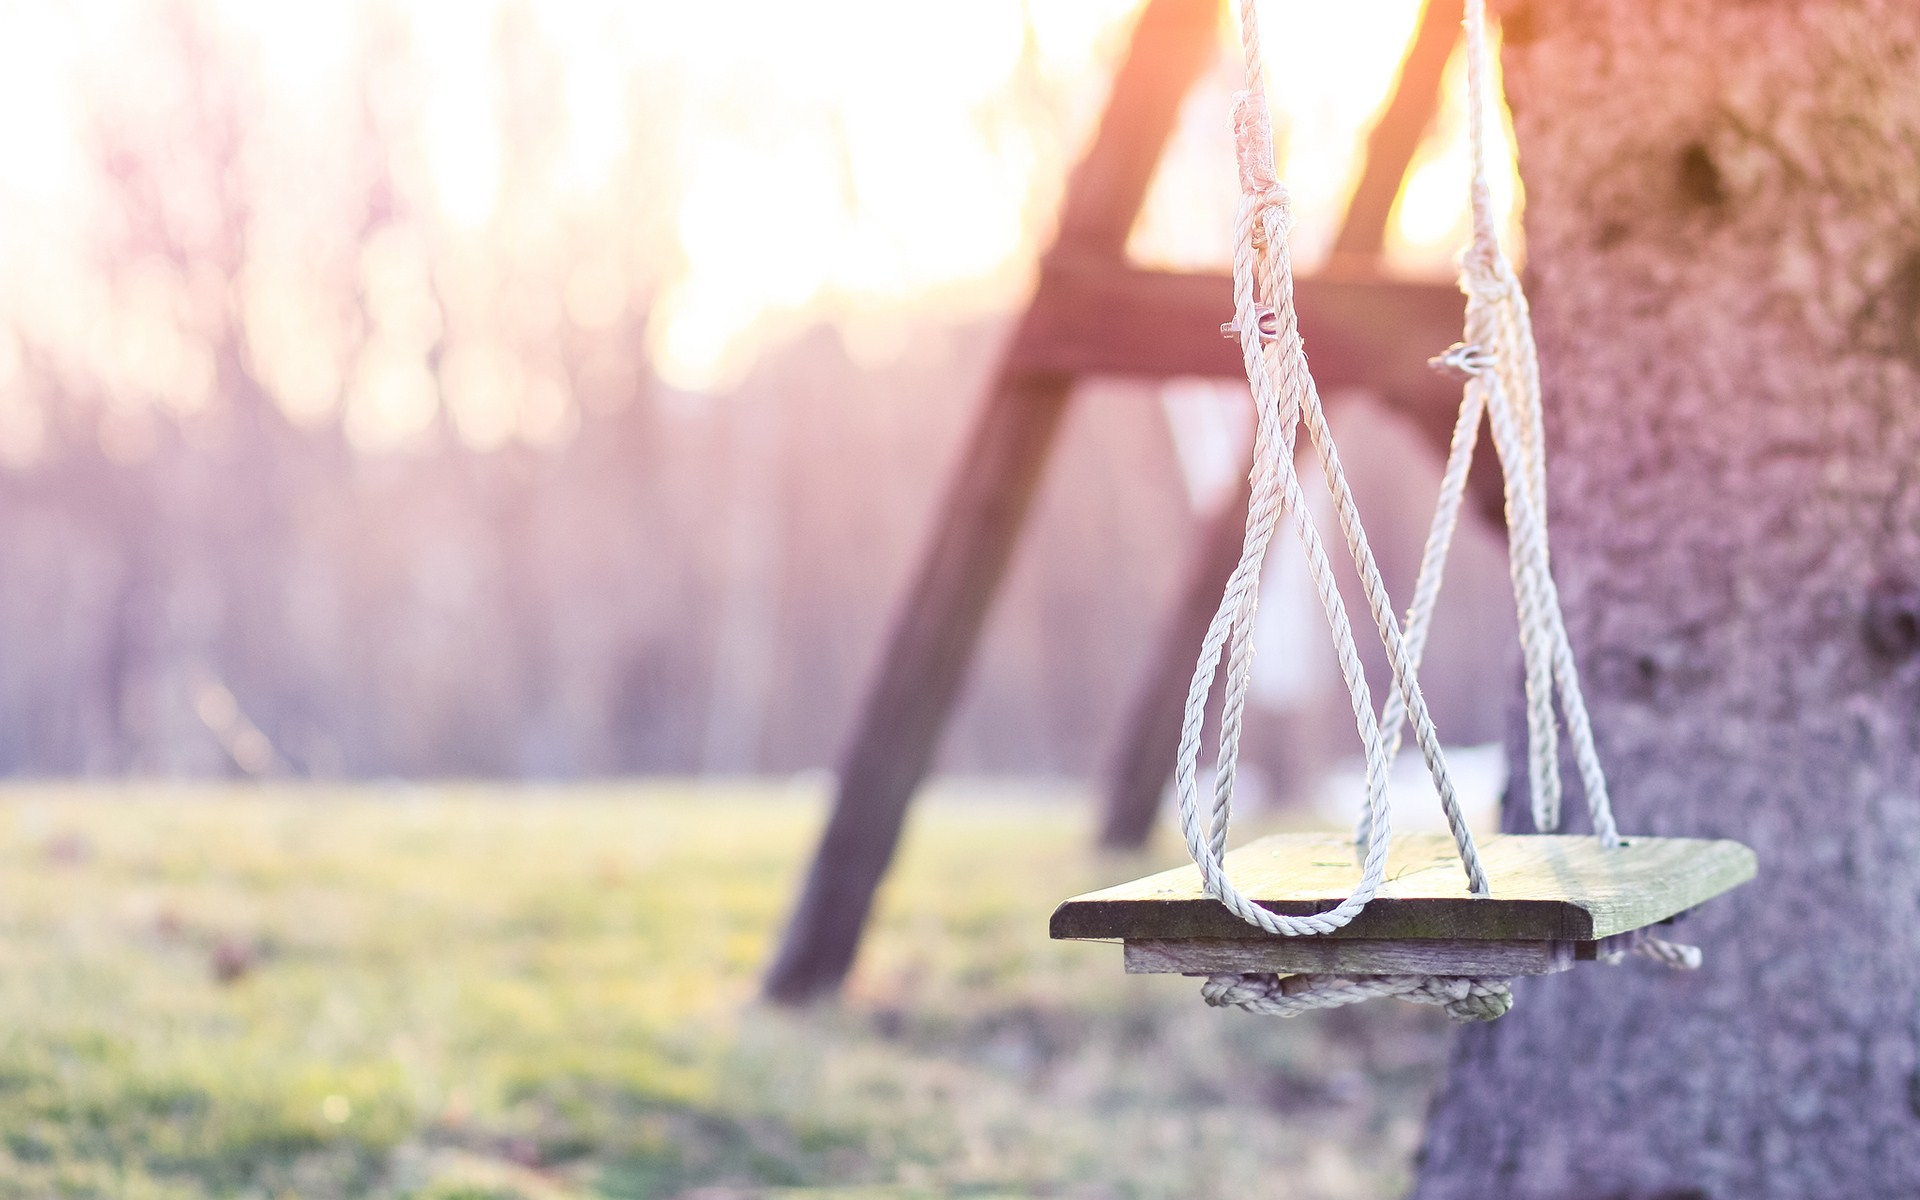 Beautiful Swing Set Wallpaper